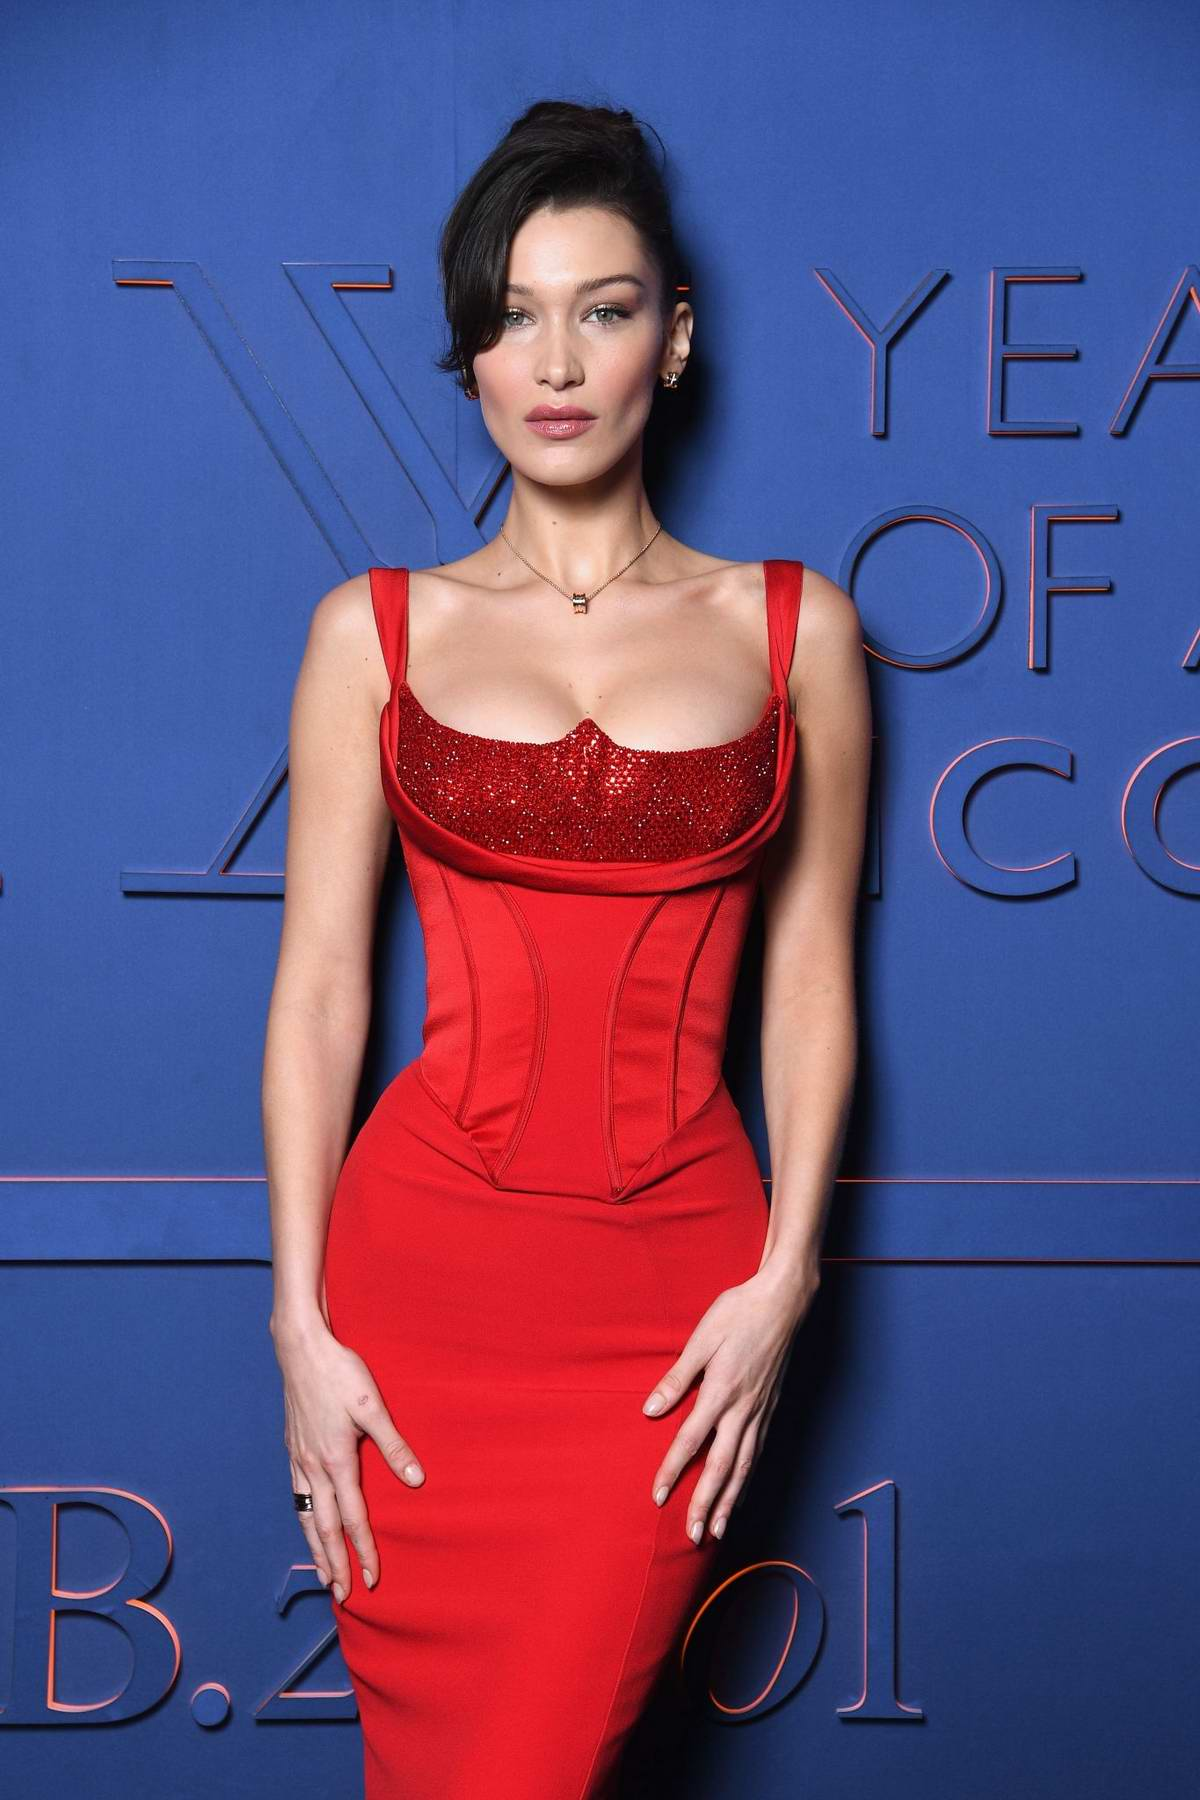 Bella Hadid attends the Bvlgari - B.ZERO1 XX Anniversary Global Launch Event at Auditorium Parco Della Musica in Rome, Italy